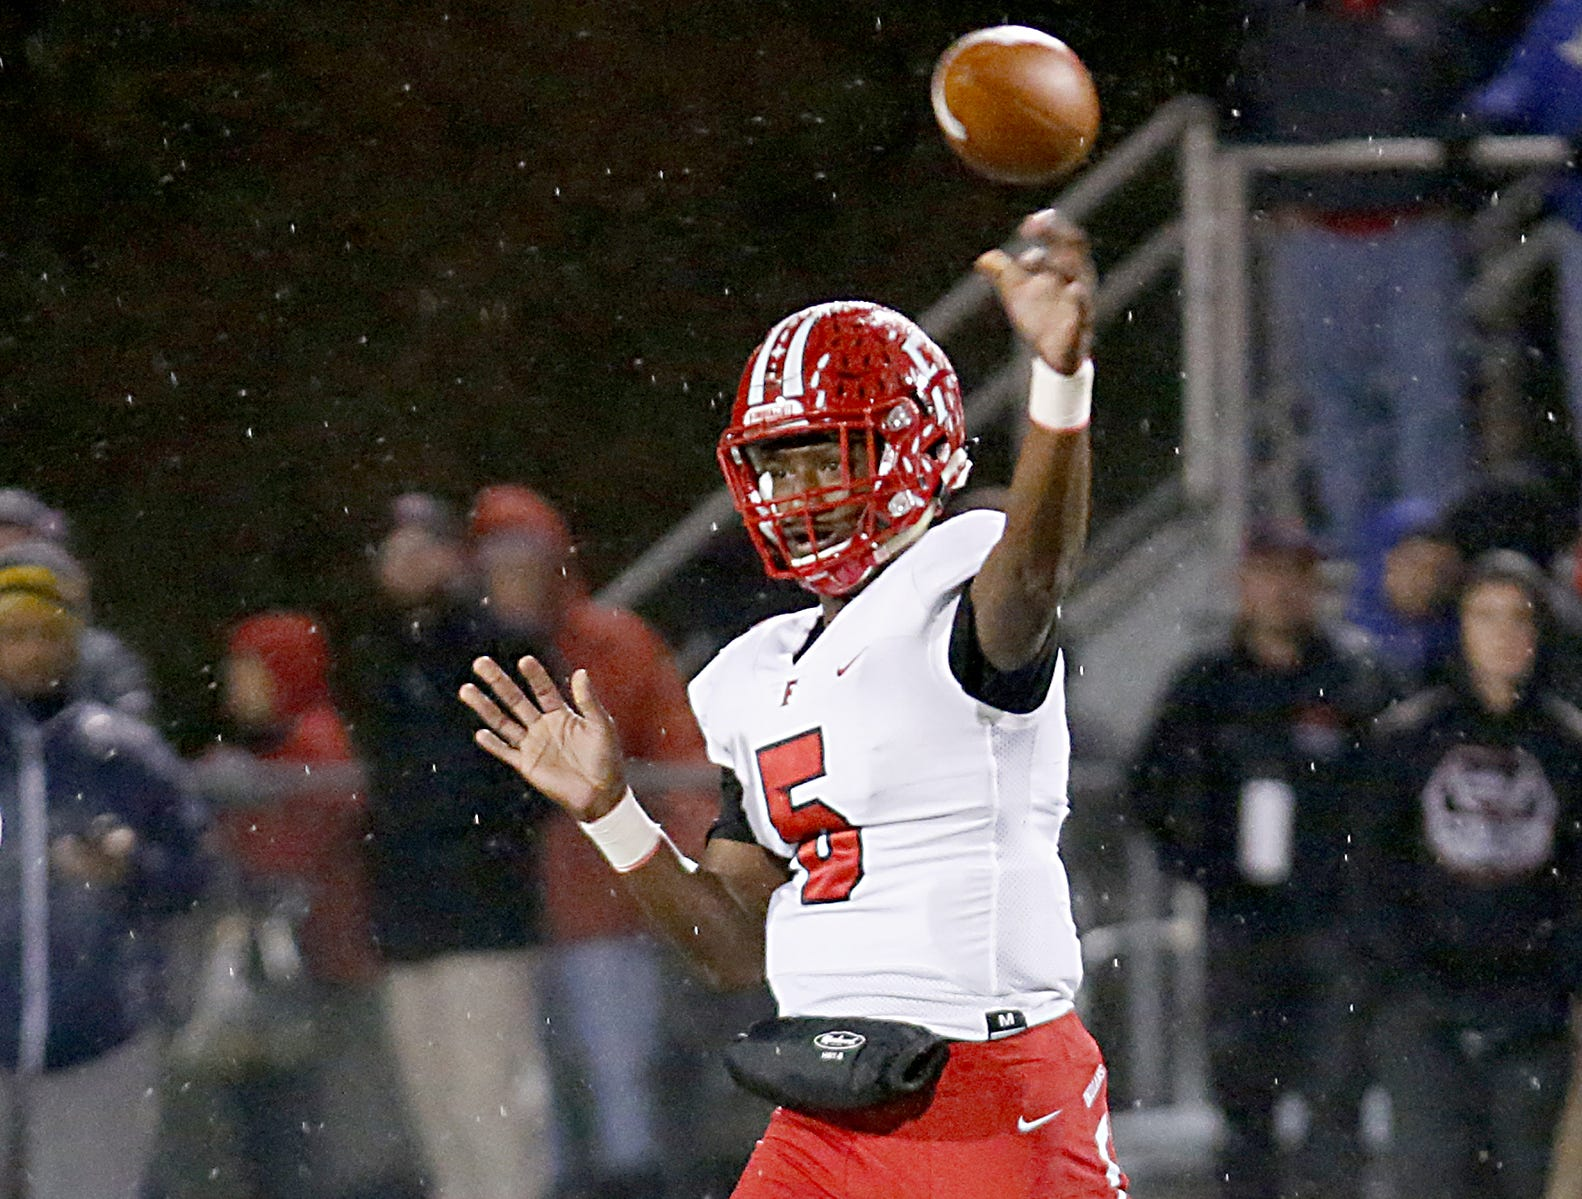 Fairfield quarterback Jeff Tyus passes against Milford during their Division I playoff game at Eagle Stadium in Milford Friday, Nov. 2, 2018.